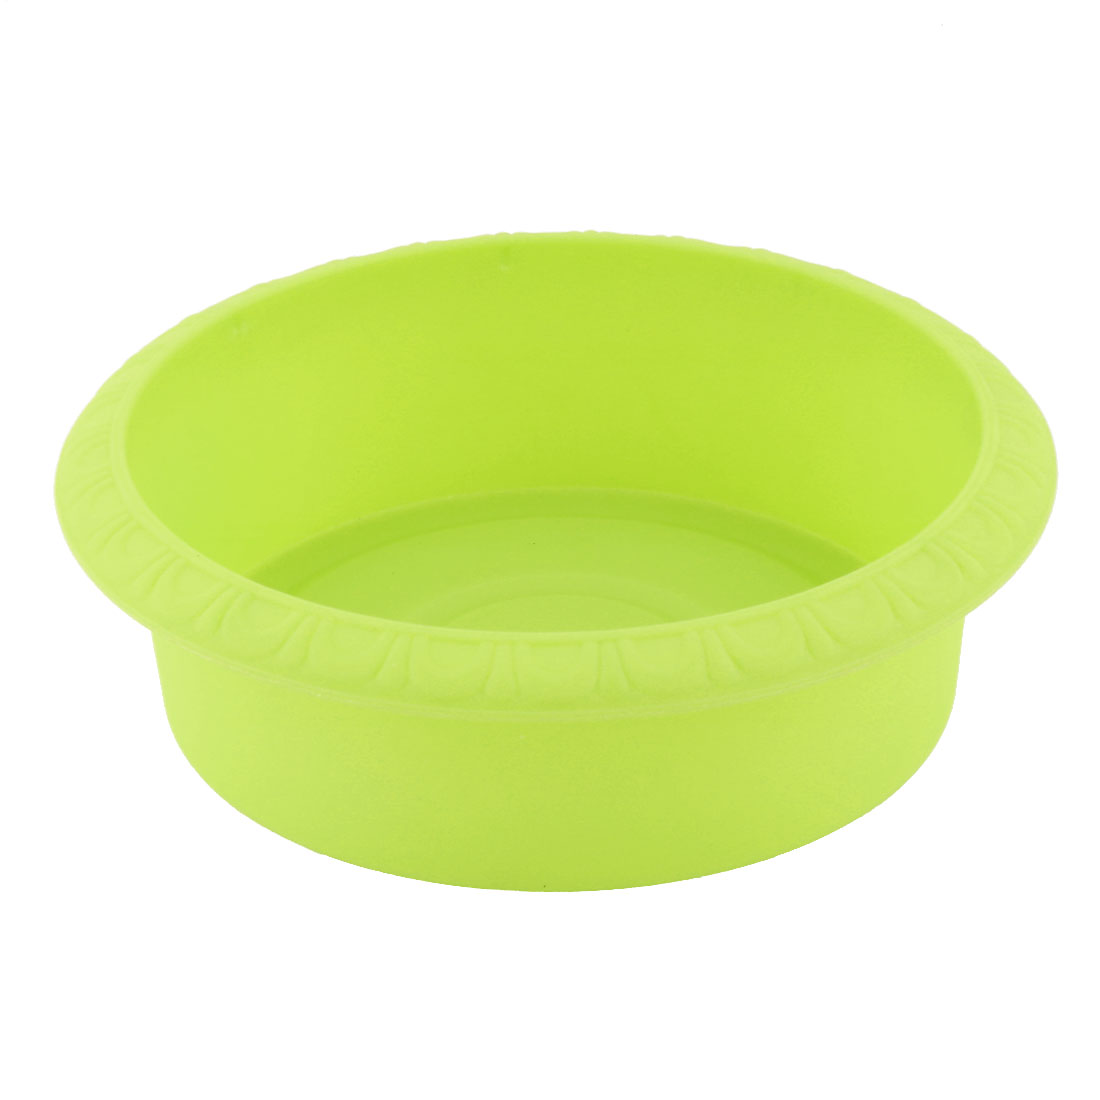 Home Plastic Round Tea Table Decor Plant Lotus Grass Flower Pot Container Yellow Green